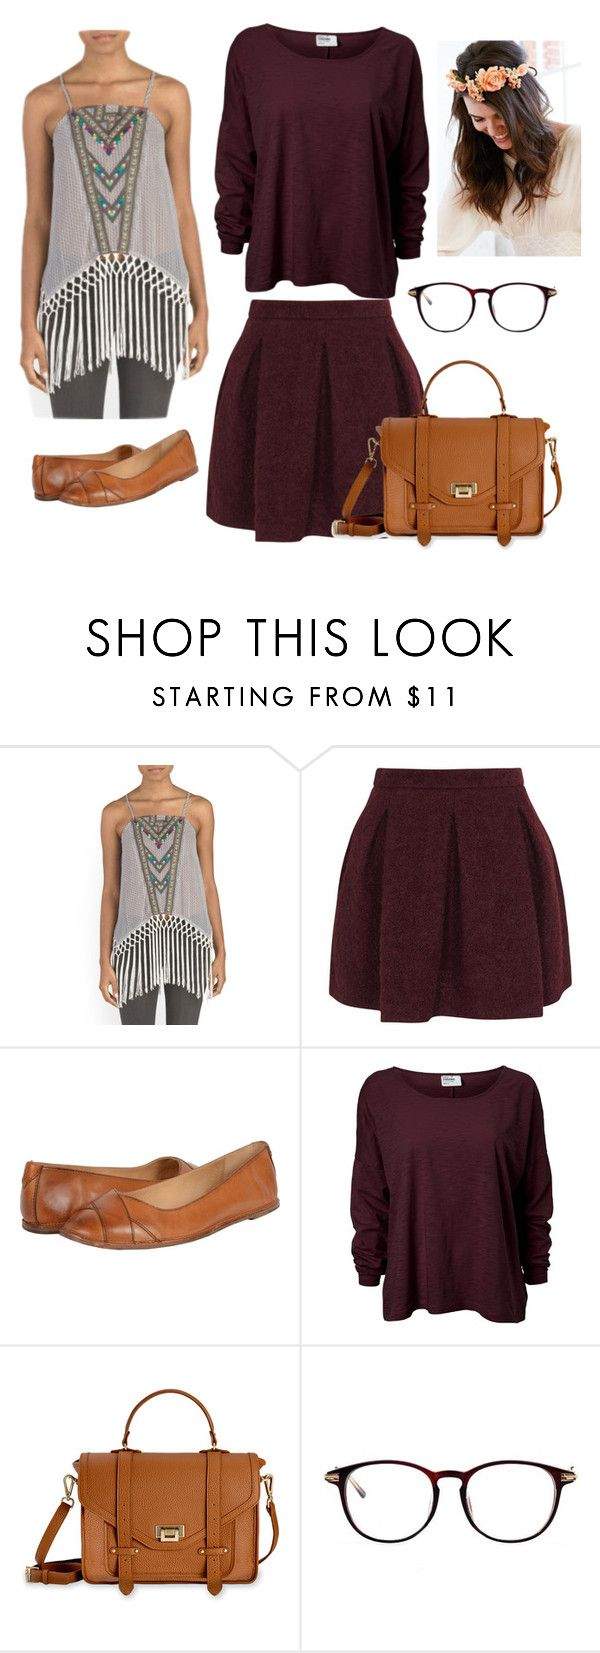 """""""Hippy prep"""" by skylarkenneally ❤ liked on Polyvore featuring Karl Lagerfeld, Frye and GiGi New York"""